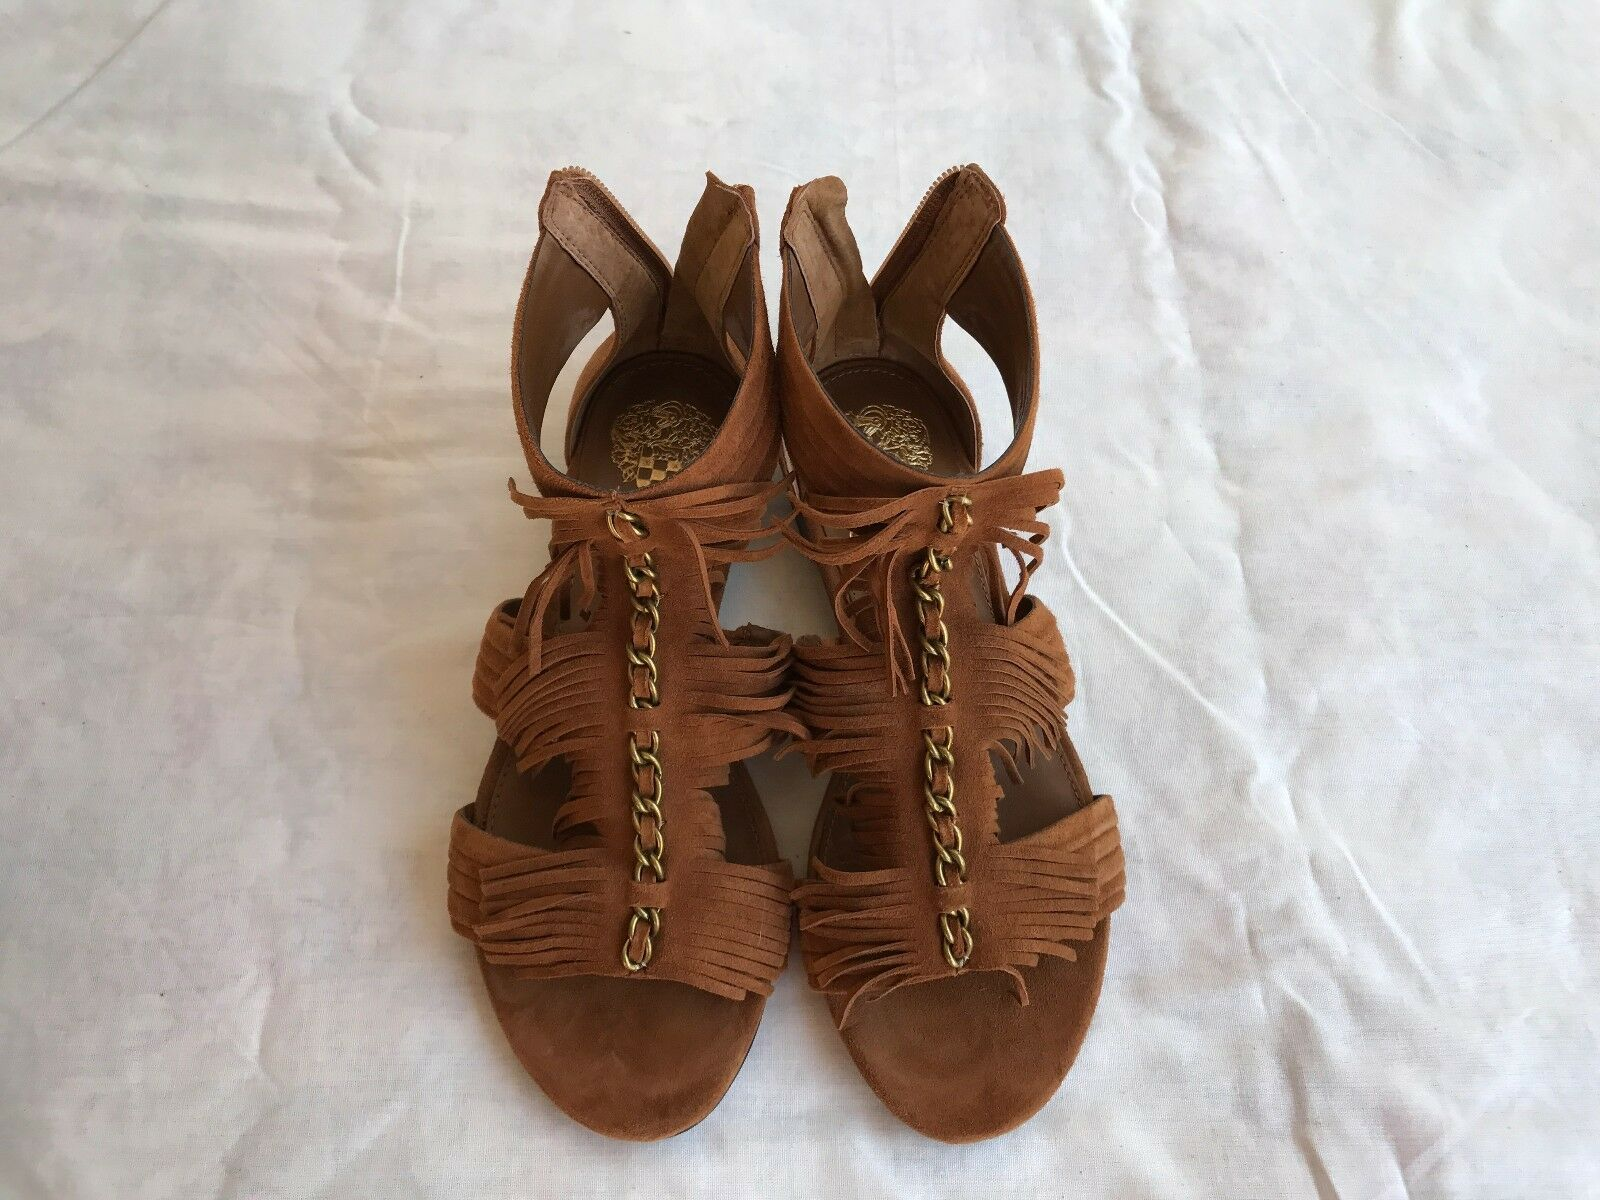 NEW Authentic Vince Camuto Hershell Suede Fringe Rust Sandals Size US 6.5 M